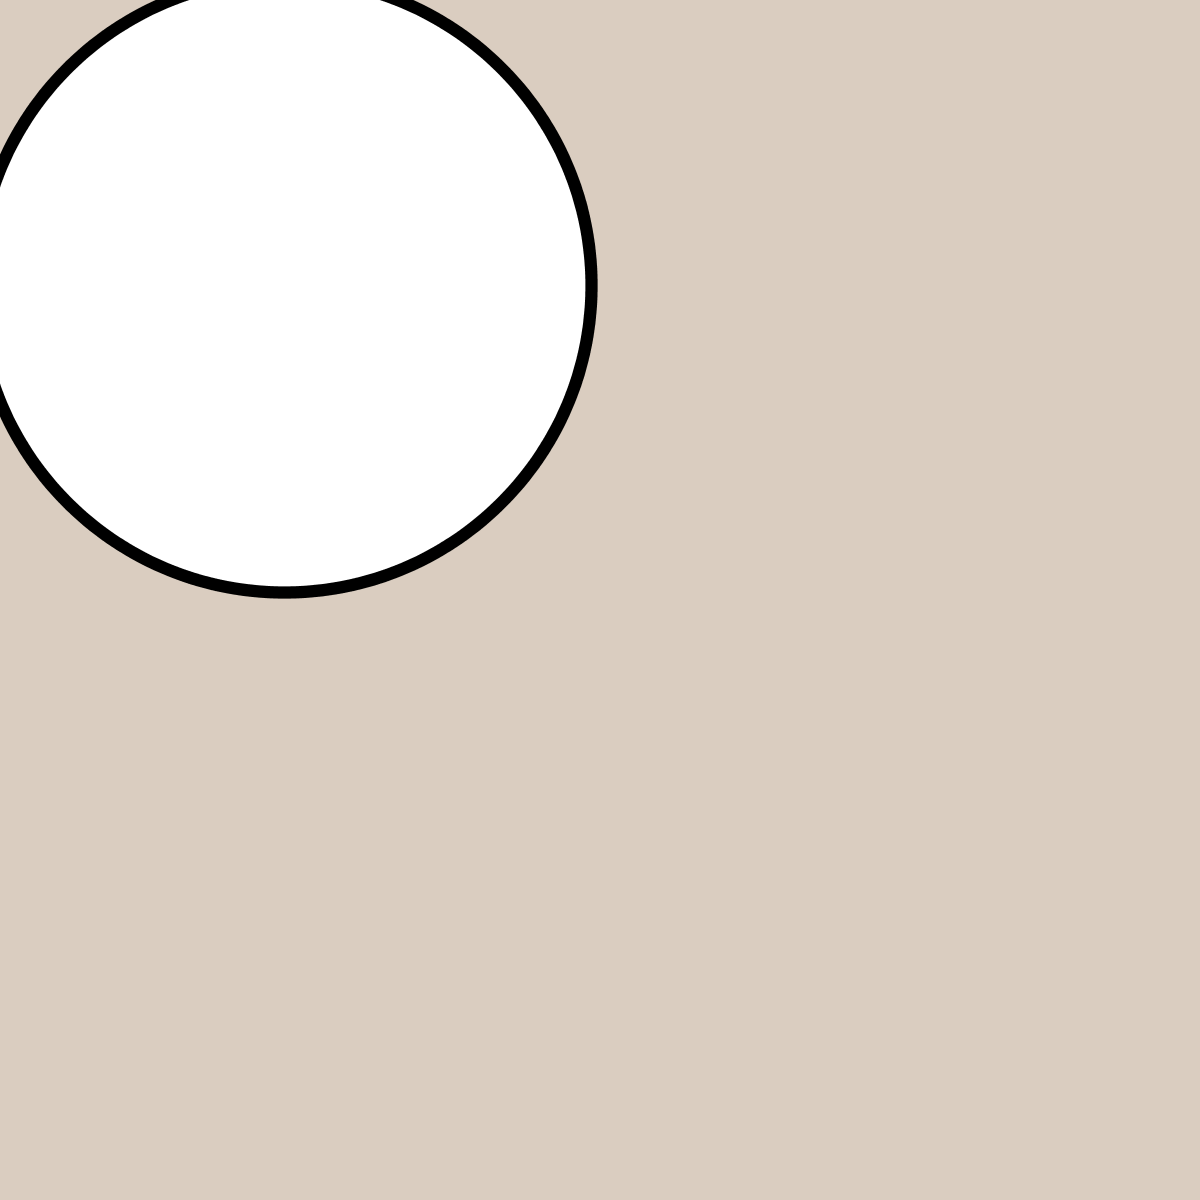 Simple zooming and panning of a circle